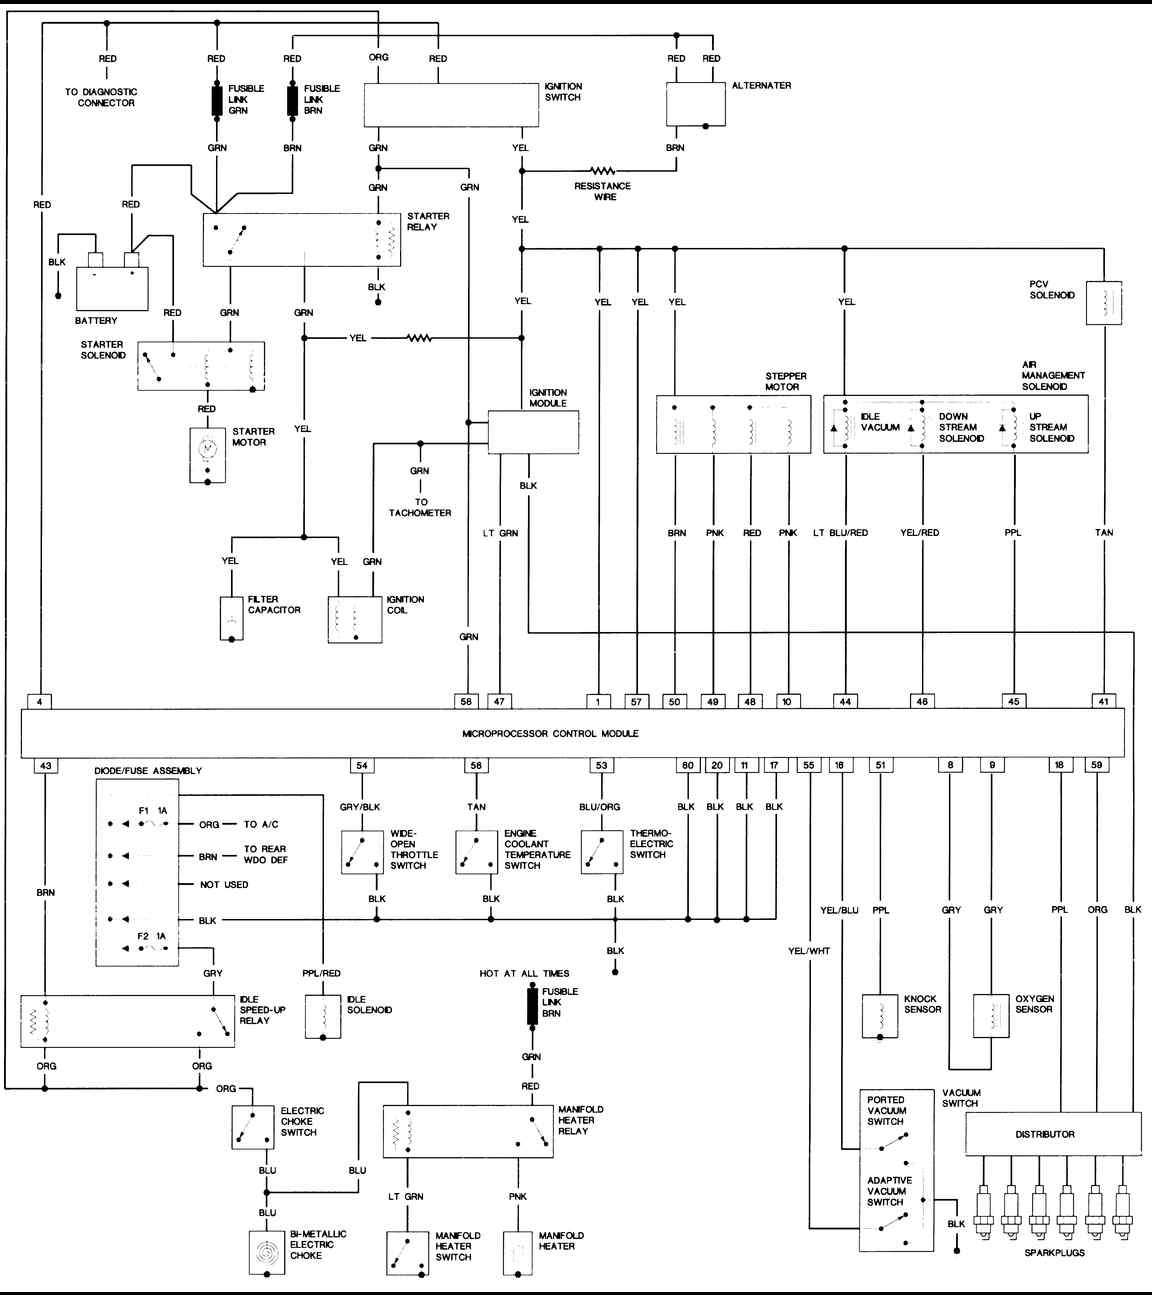 1987 jeep wrangler 4.2L engine jeep yj wiring diagram 1987 wiring diagrams instruction jeep wrangler yj diagrams at crackthecode.co